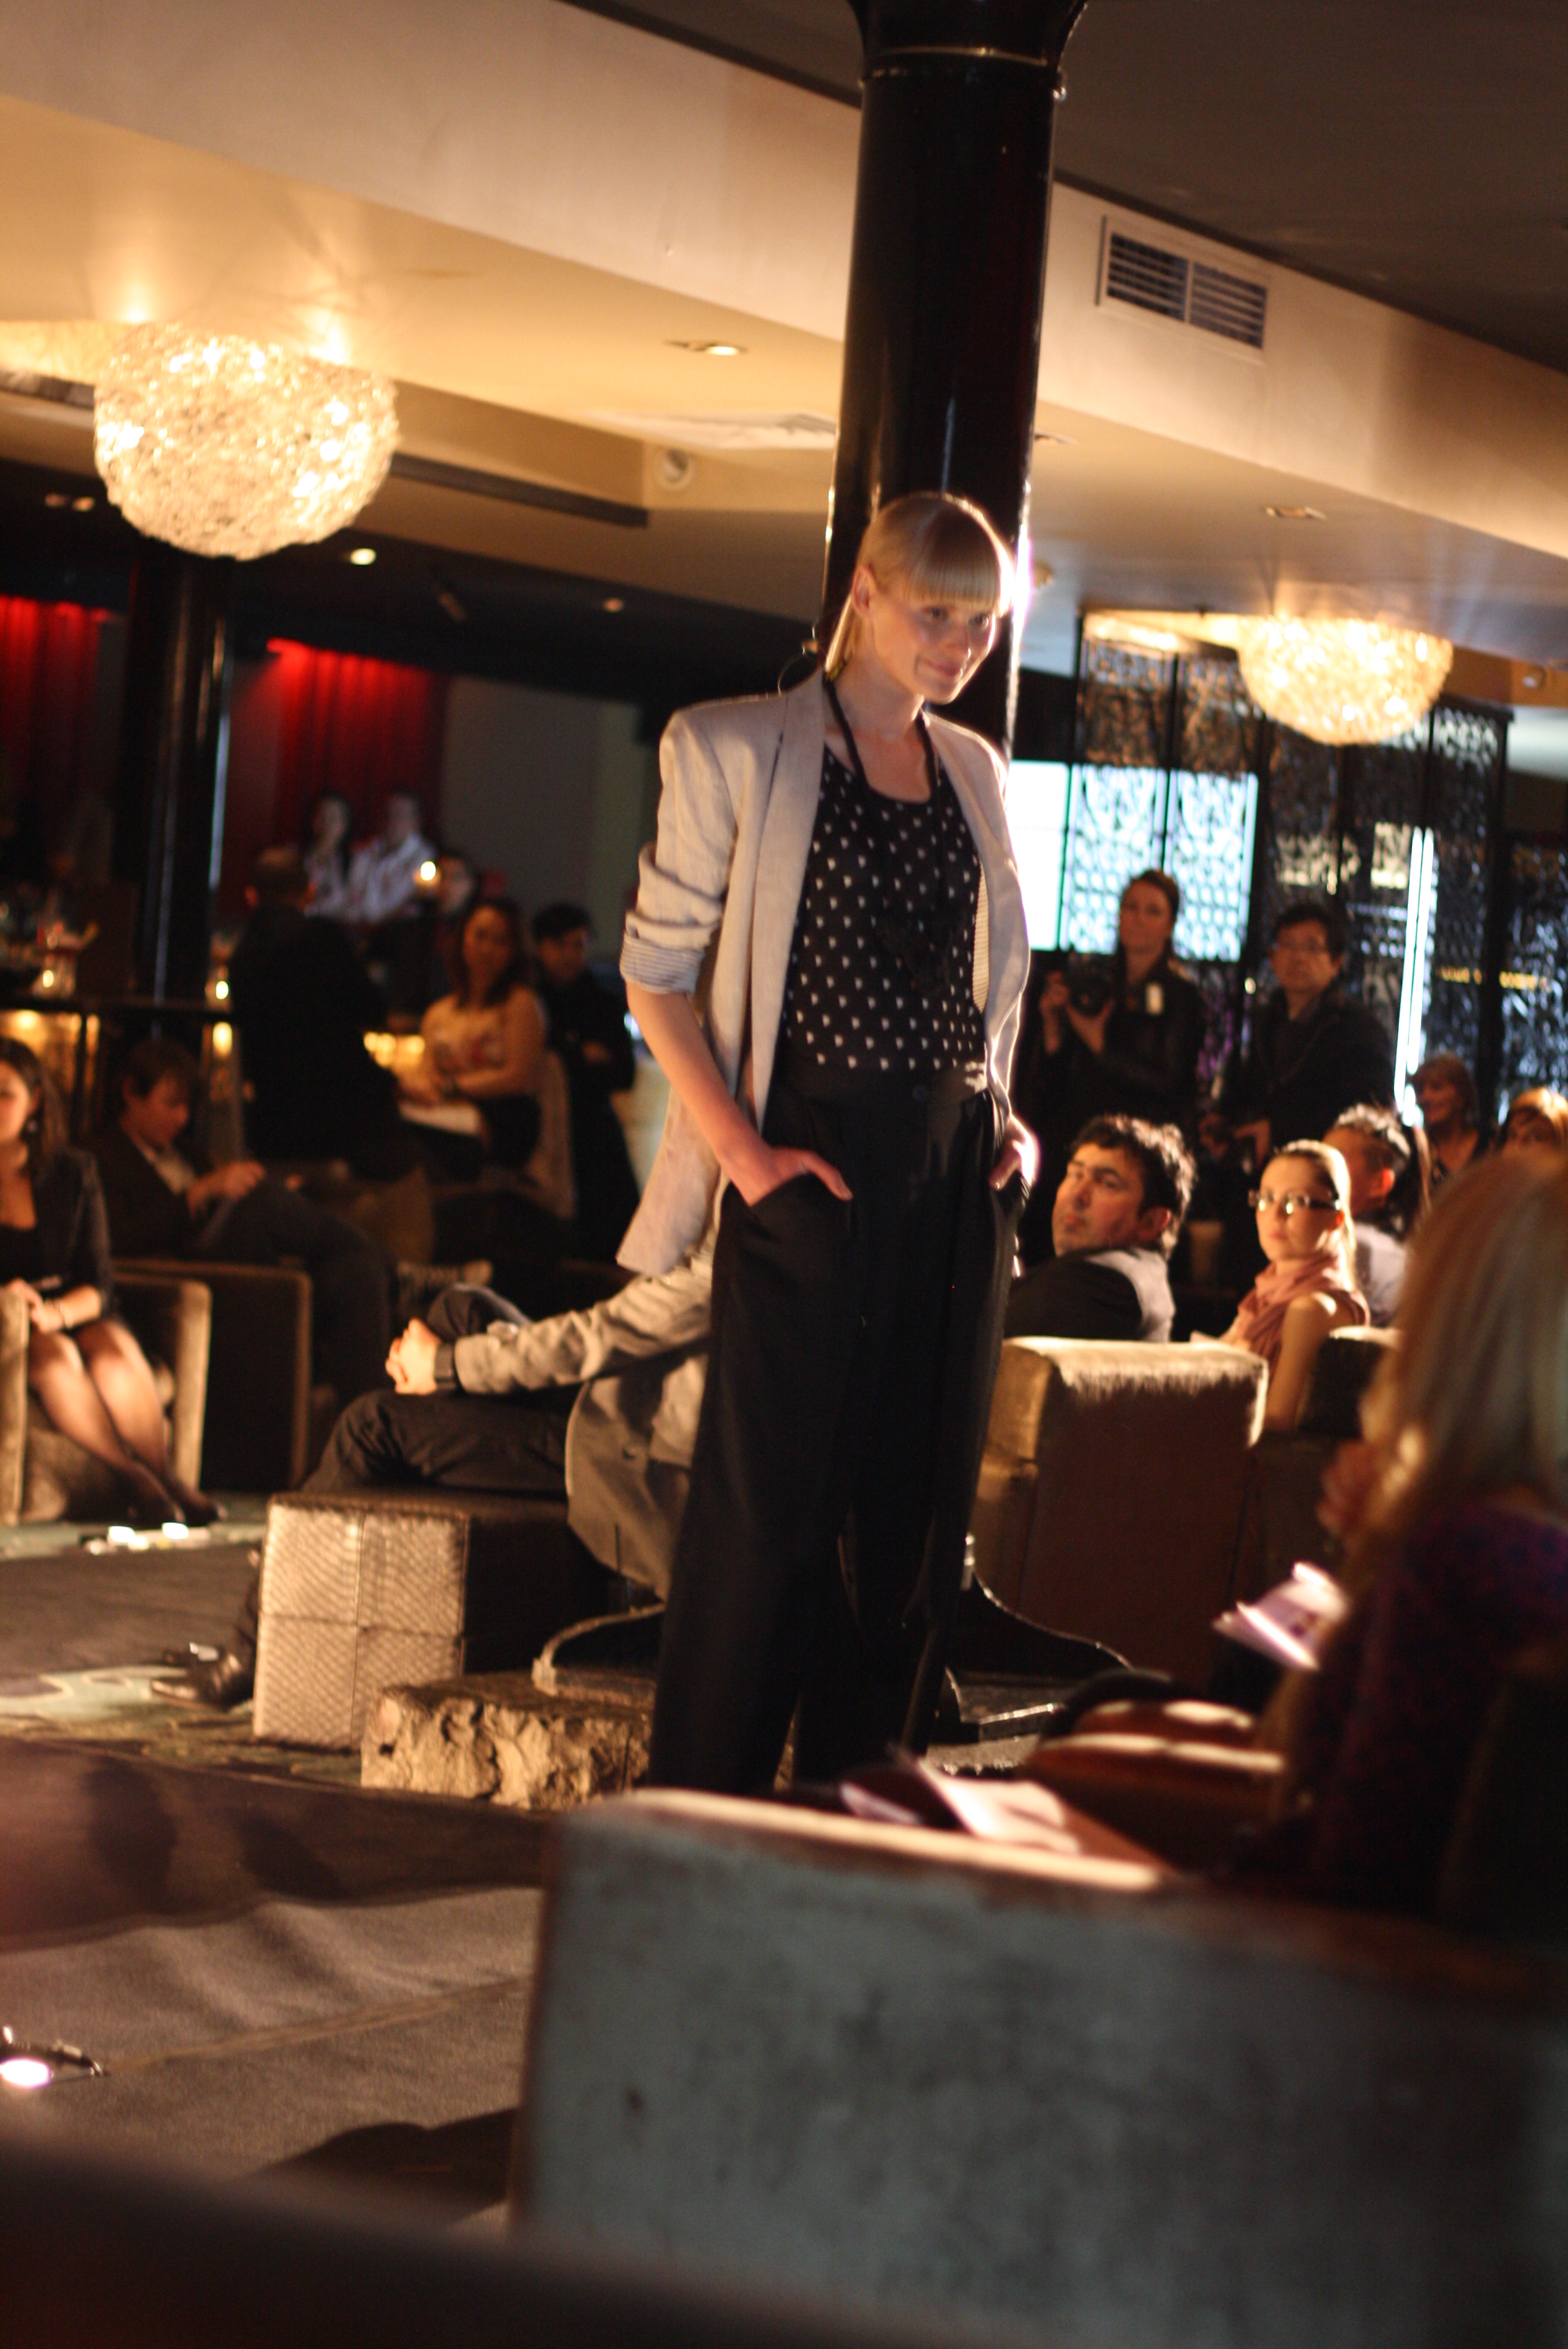 A model poses for the judges in masculine tailoring, with a light blazer and dark top and pants.